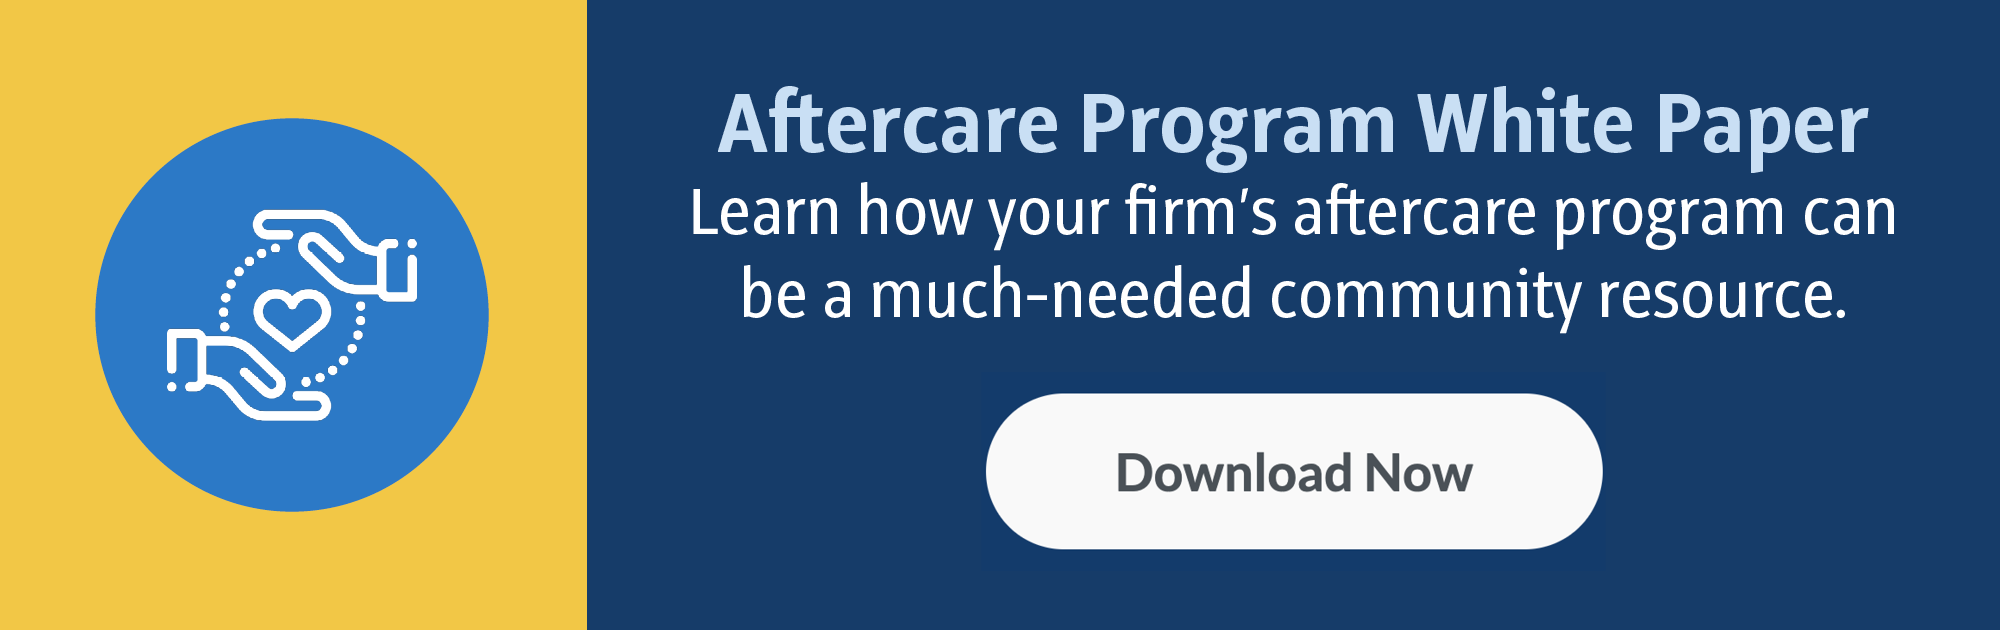 Aftercare Program White Paper: Learn how your firm's aftercare program can be a much-needed community resource. (Download Now)